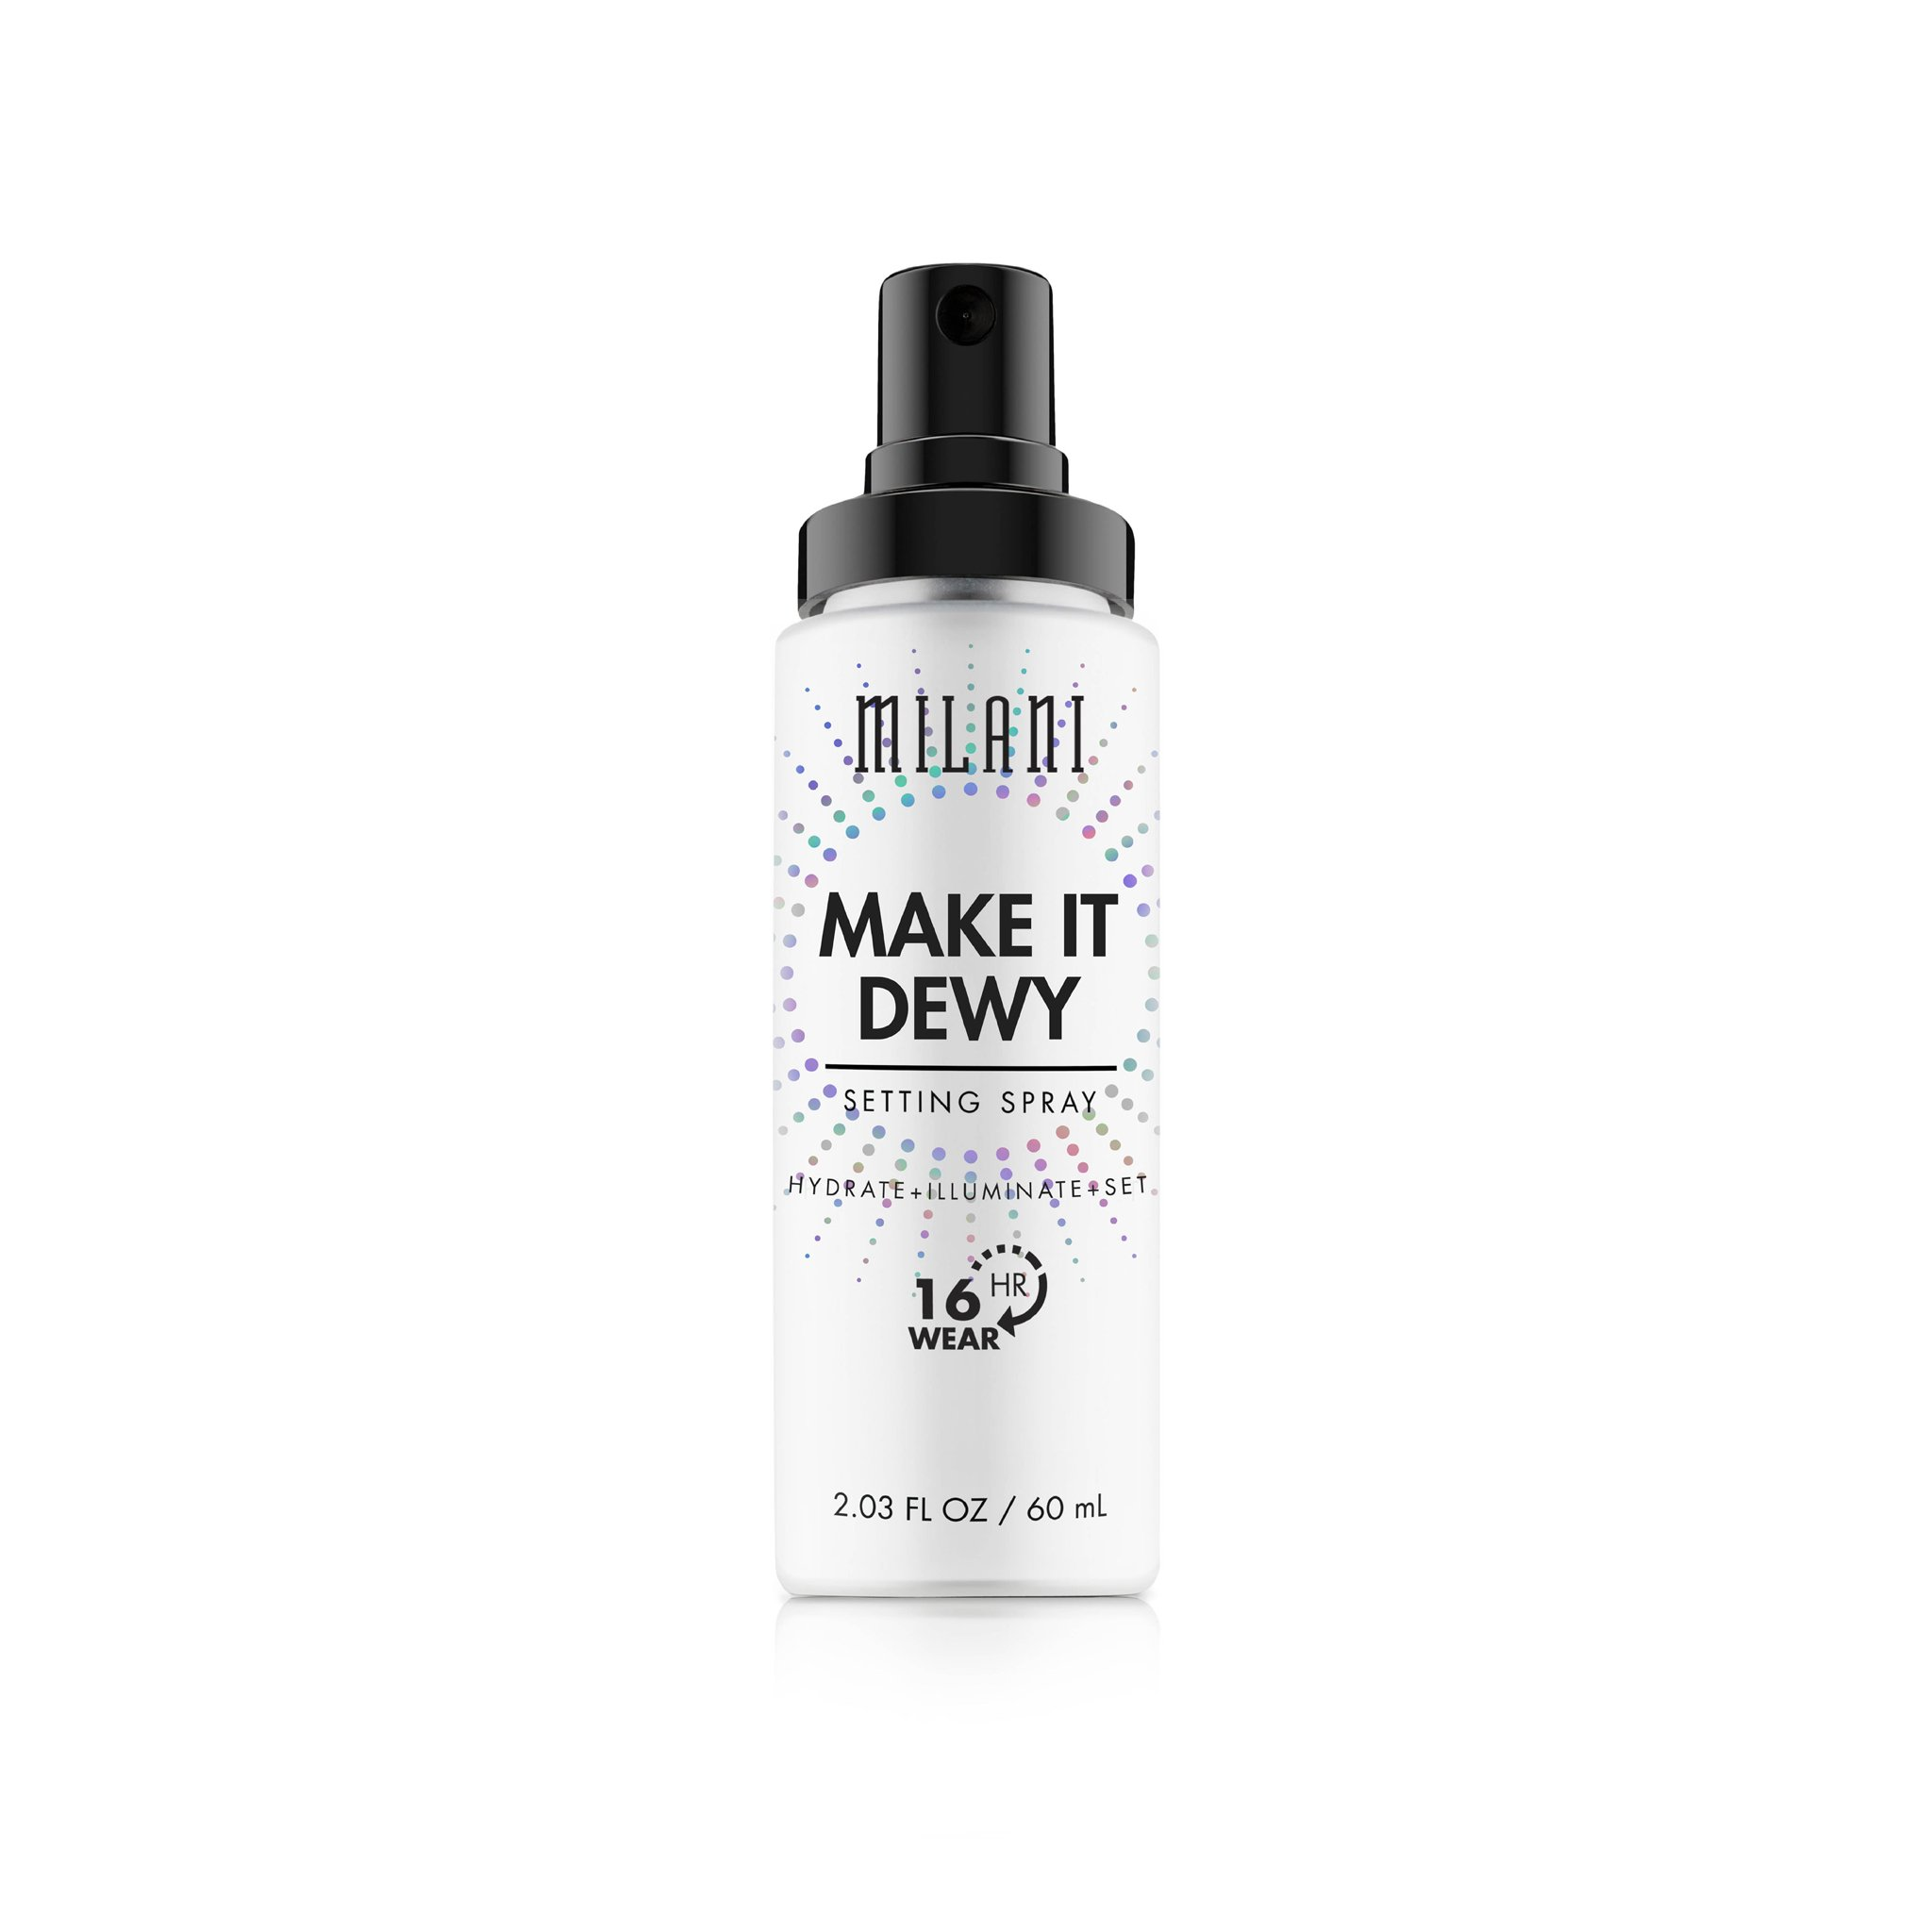 MAKE IT DEWY 3 IN 1 SETTING SPRAY HYDRATE  ILLUMINATE SET #04